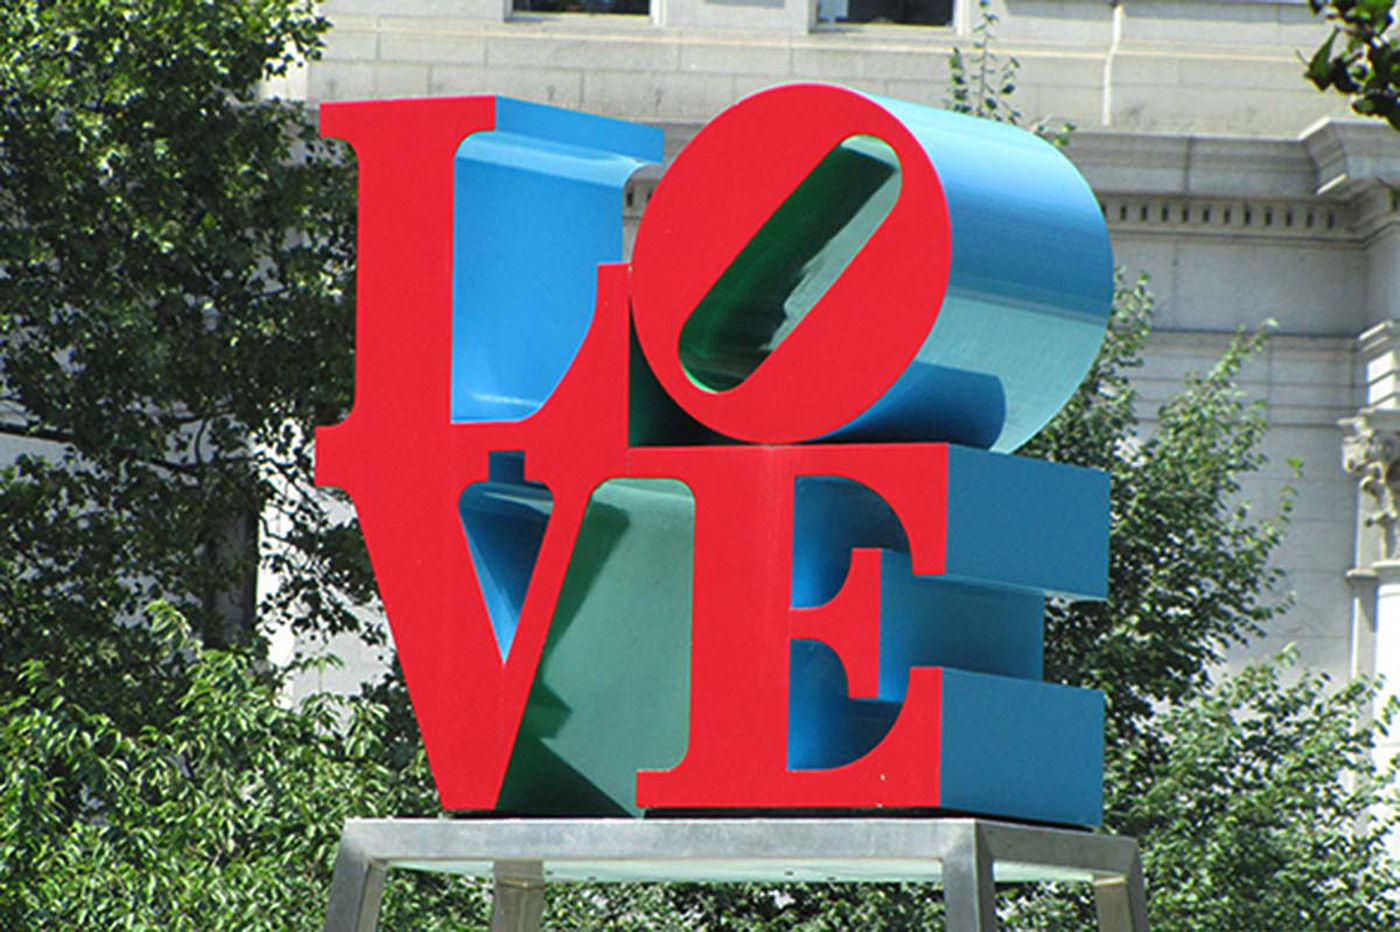 Last chance at LOVE; statue to be removed next week